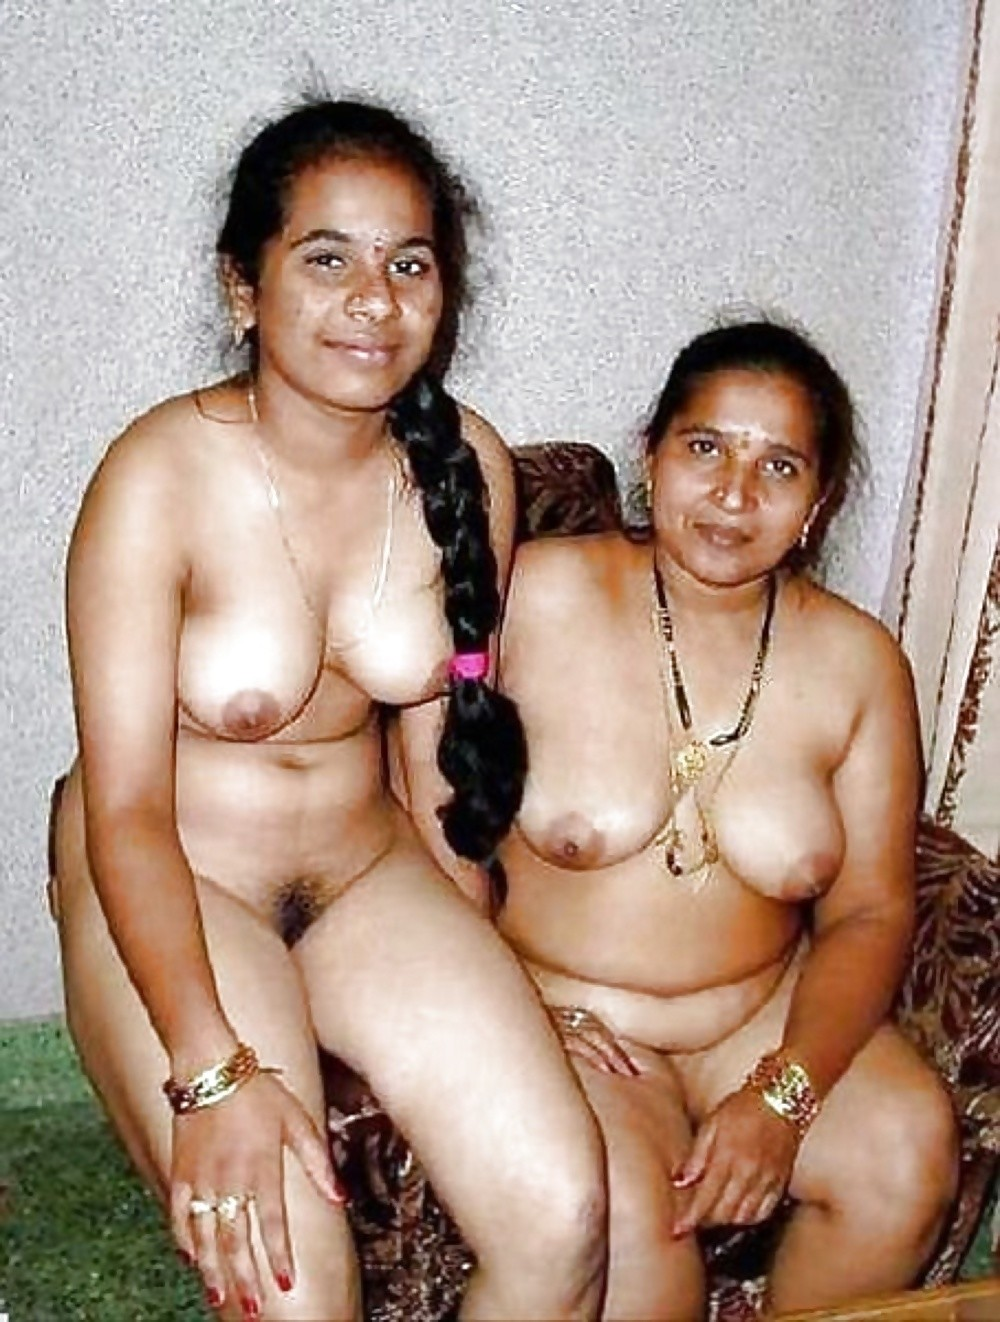 Indian Nude Indian Old Woman And Young Man Having Sex Desi Fuck Pics